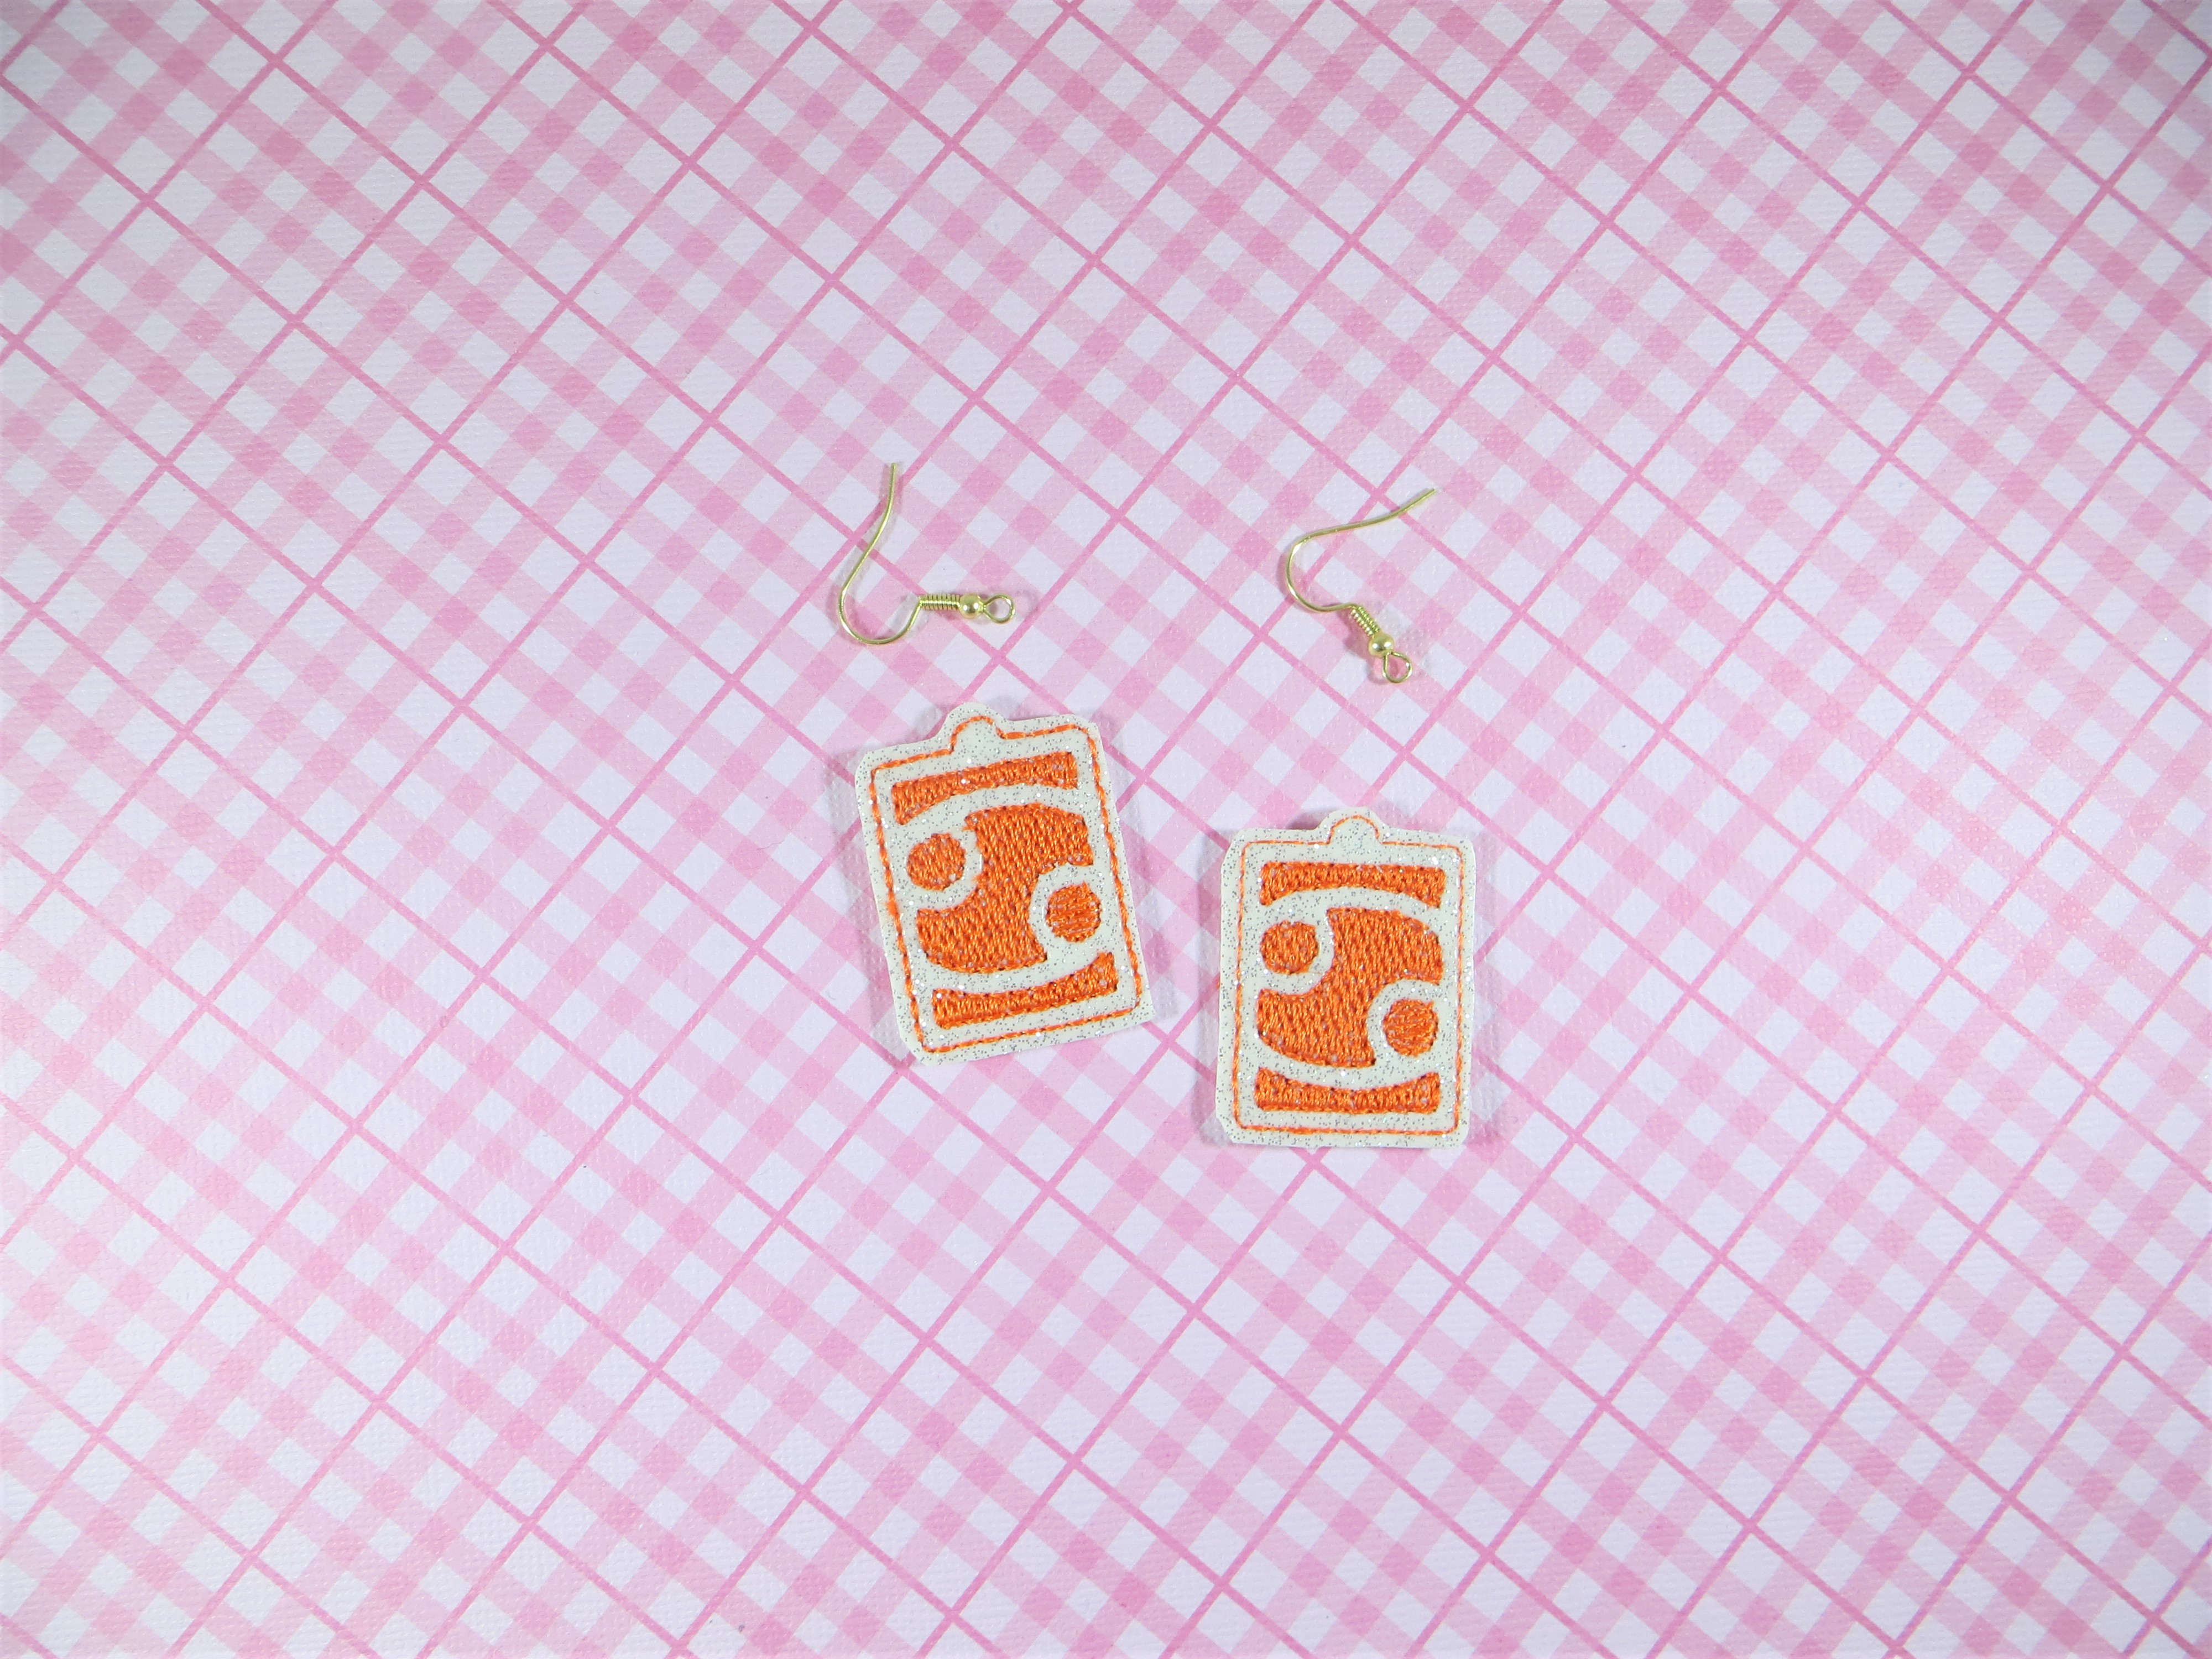 Cancer Zodiac Symbol Earrings Embroidery Design